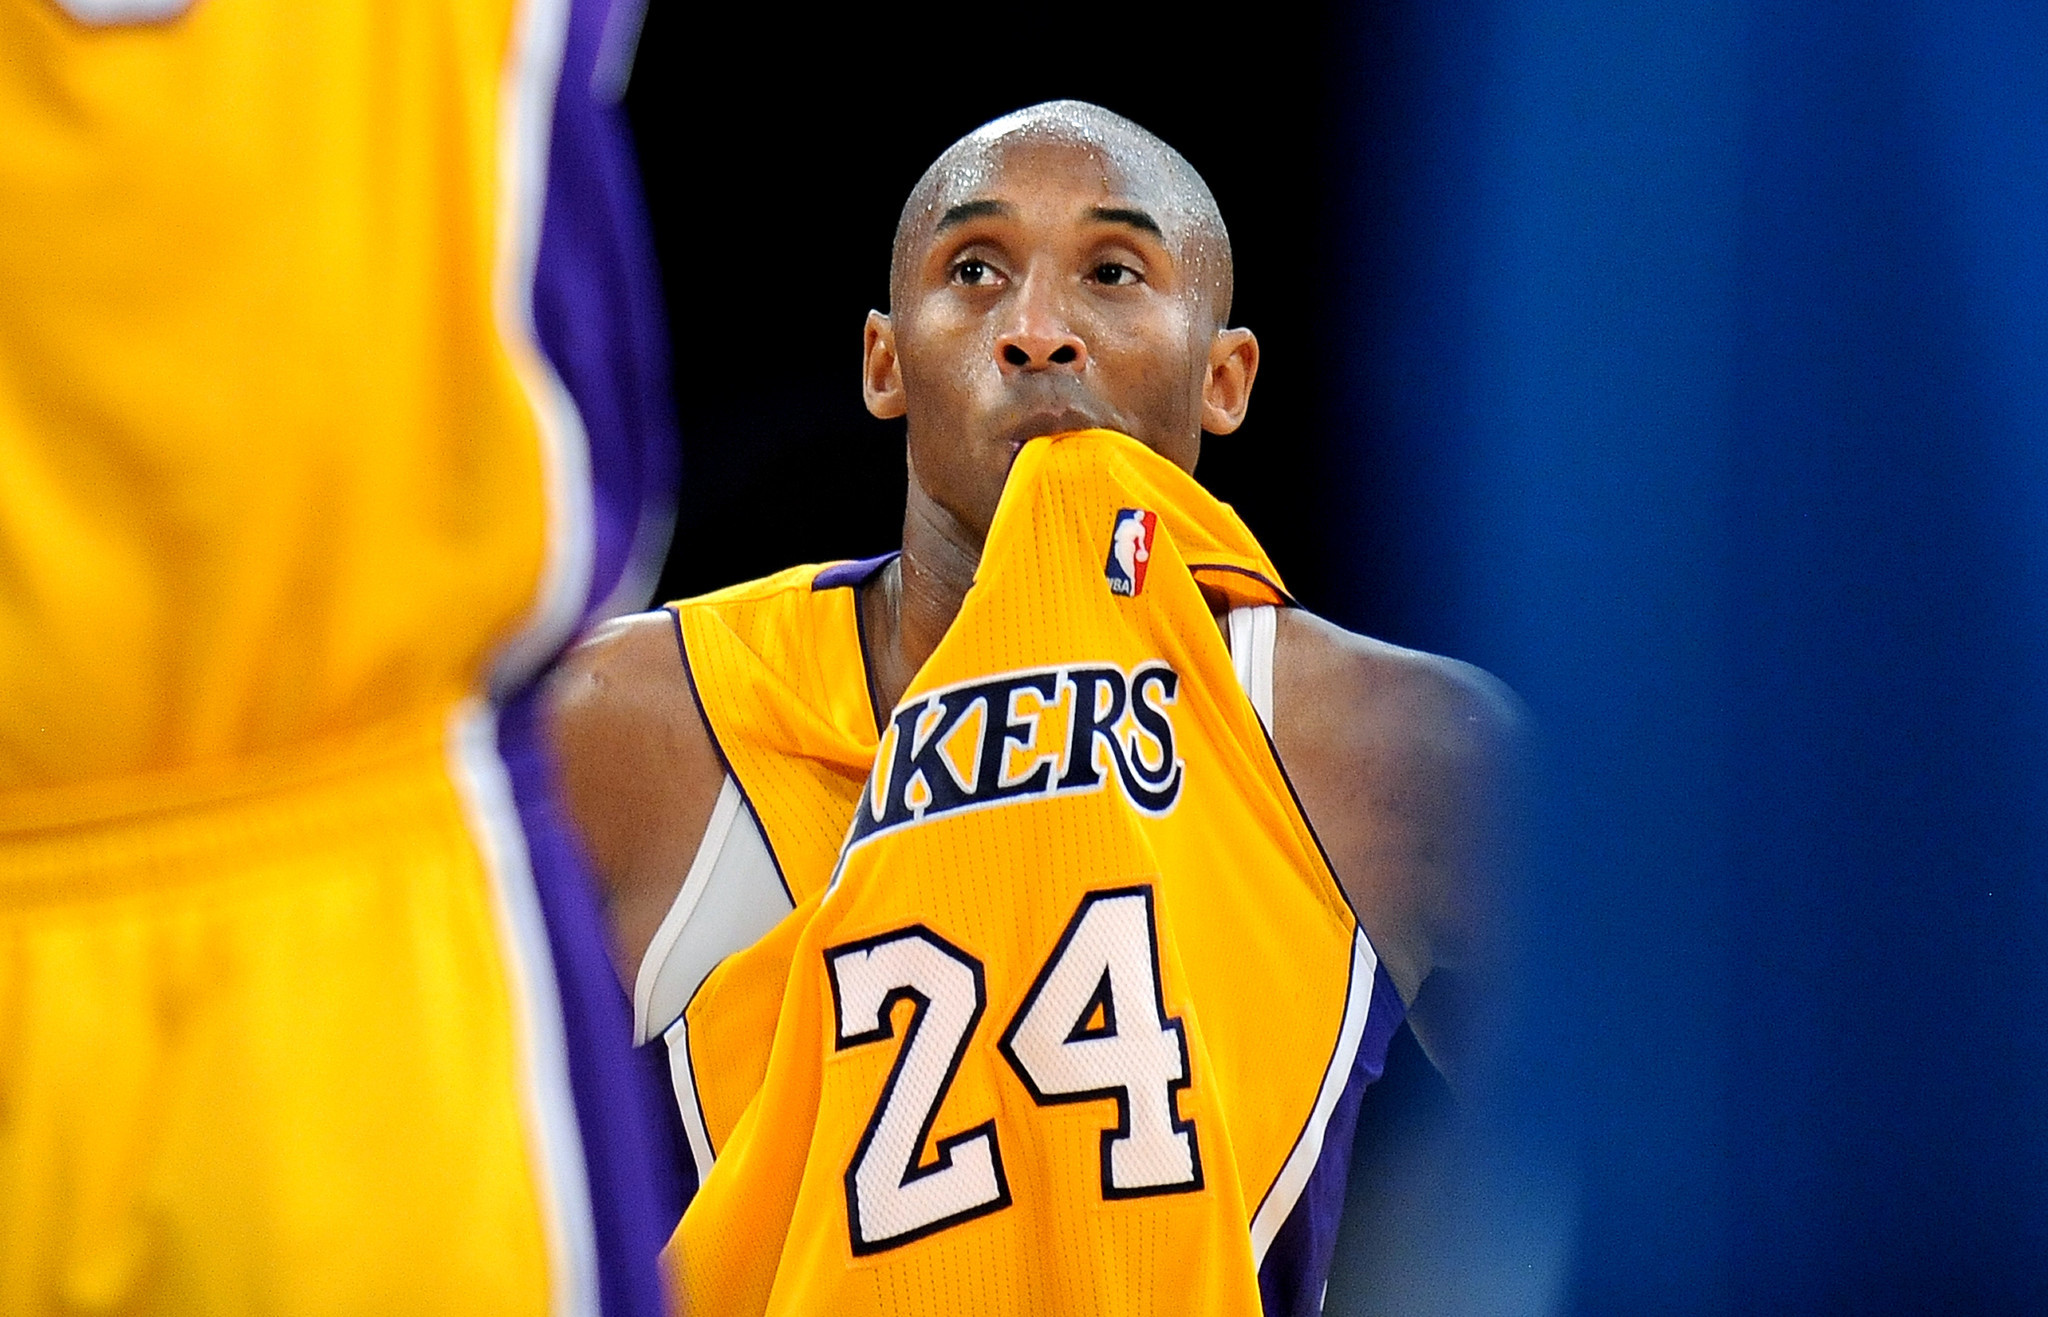 Lakers' training camp roster by jersey numbers - LA Times